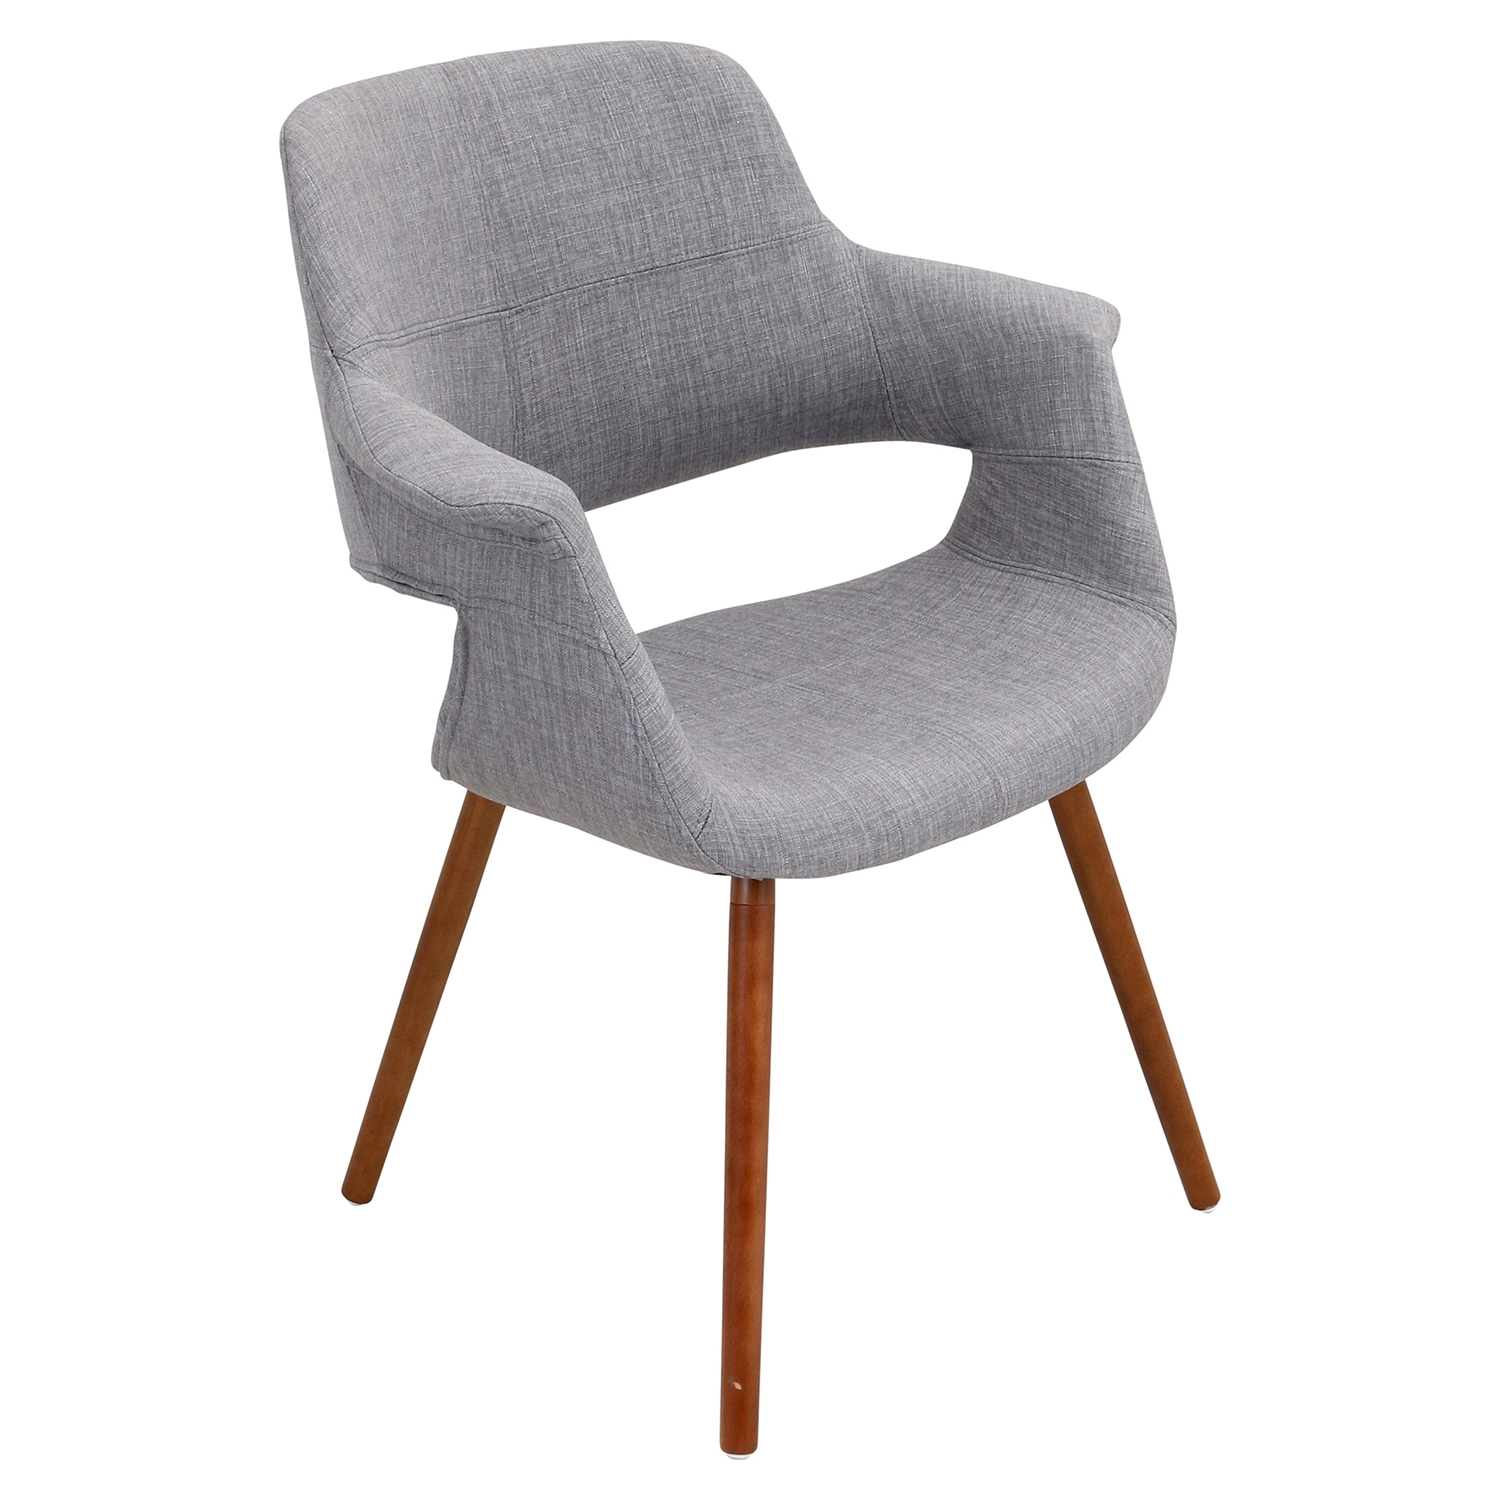 Vintage Flair Chair - Light Gray